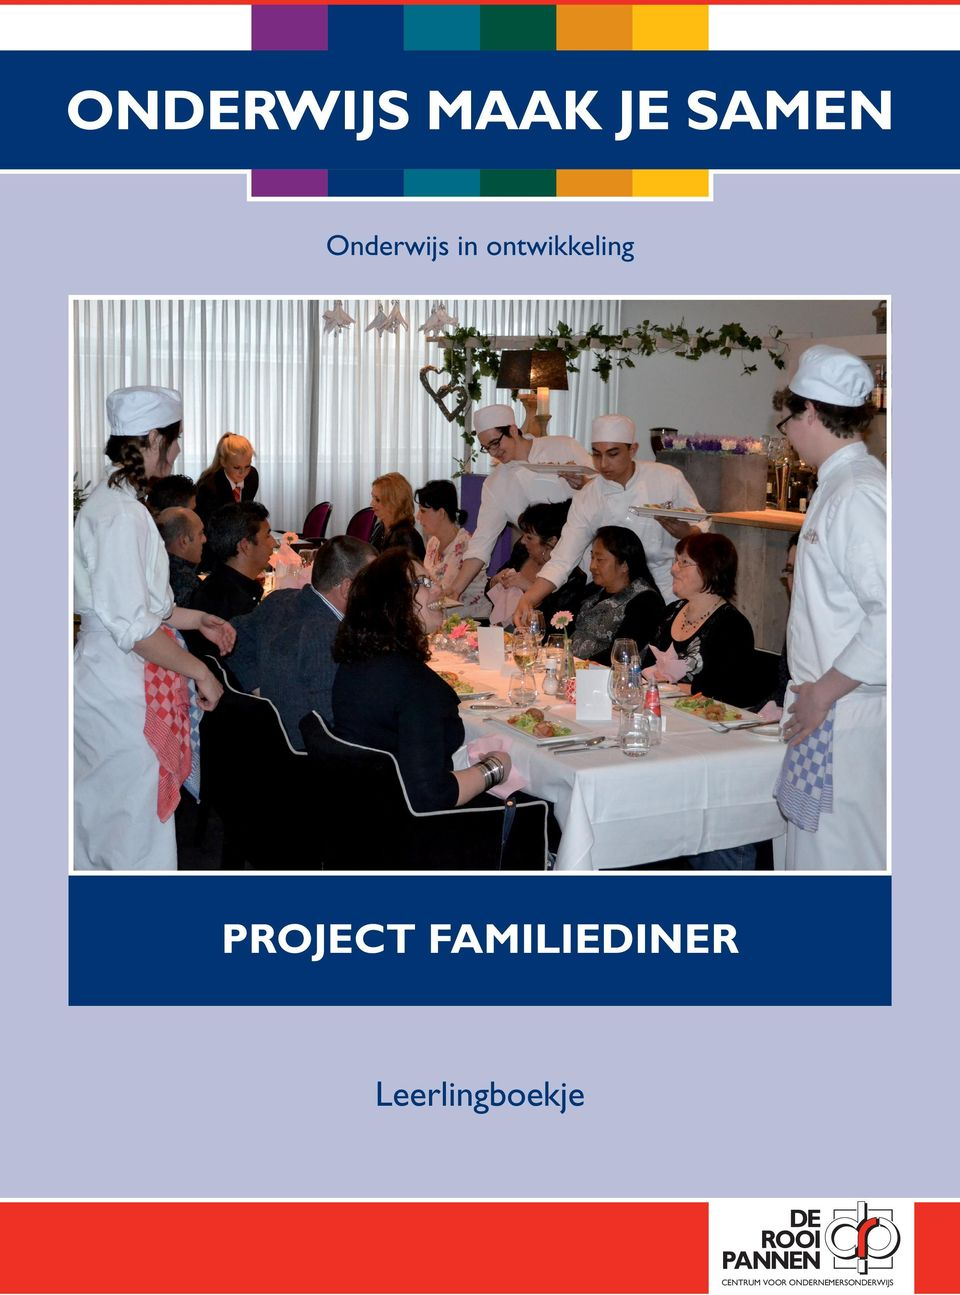 PROJECT FAMILIEDINER